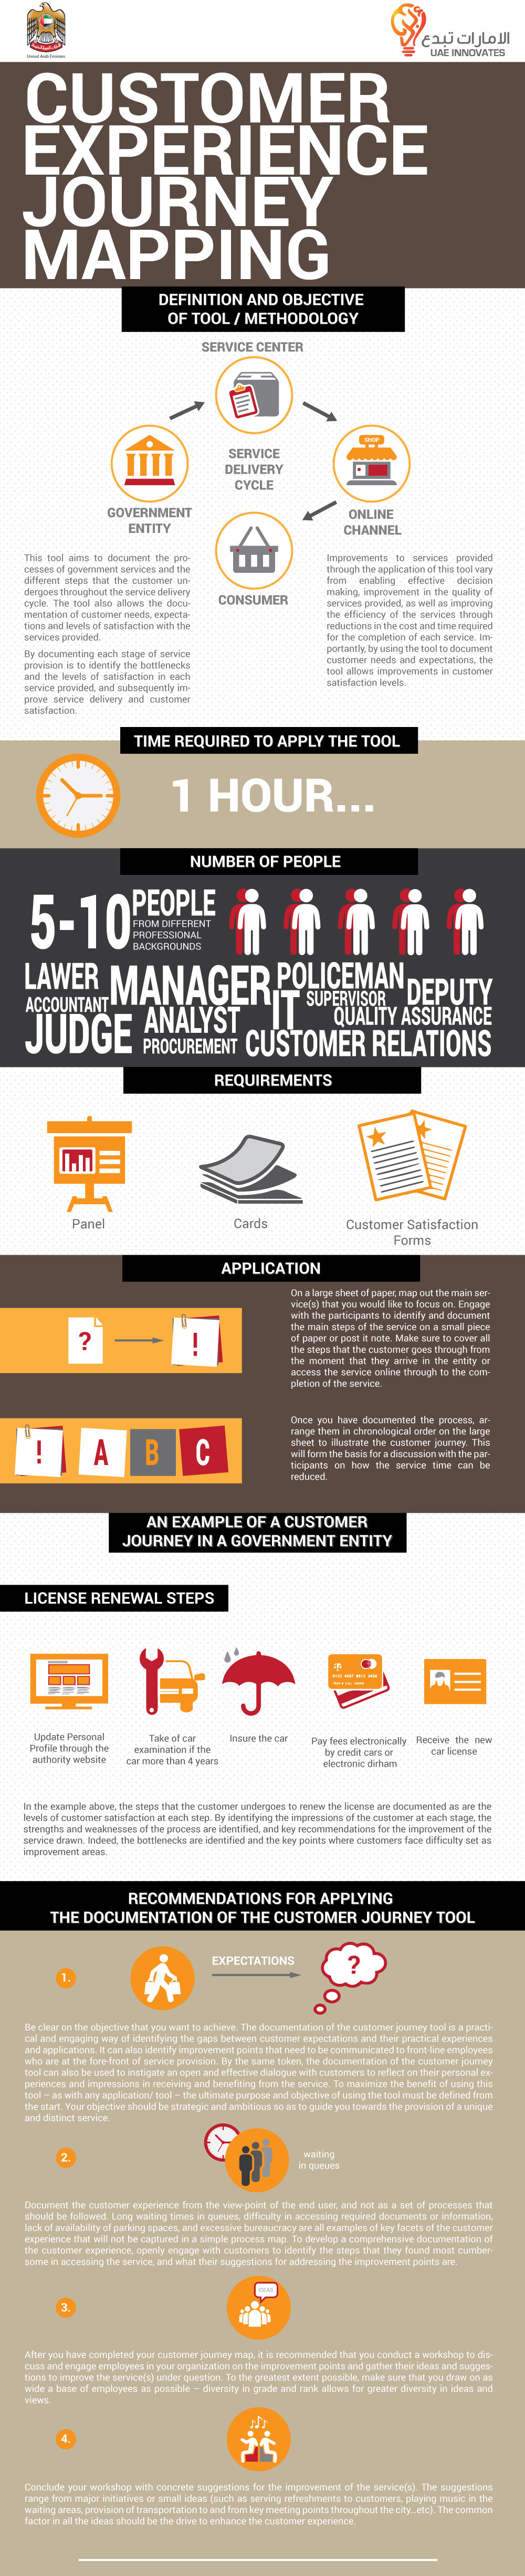 customer experience journey final